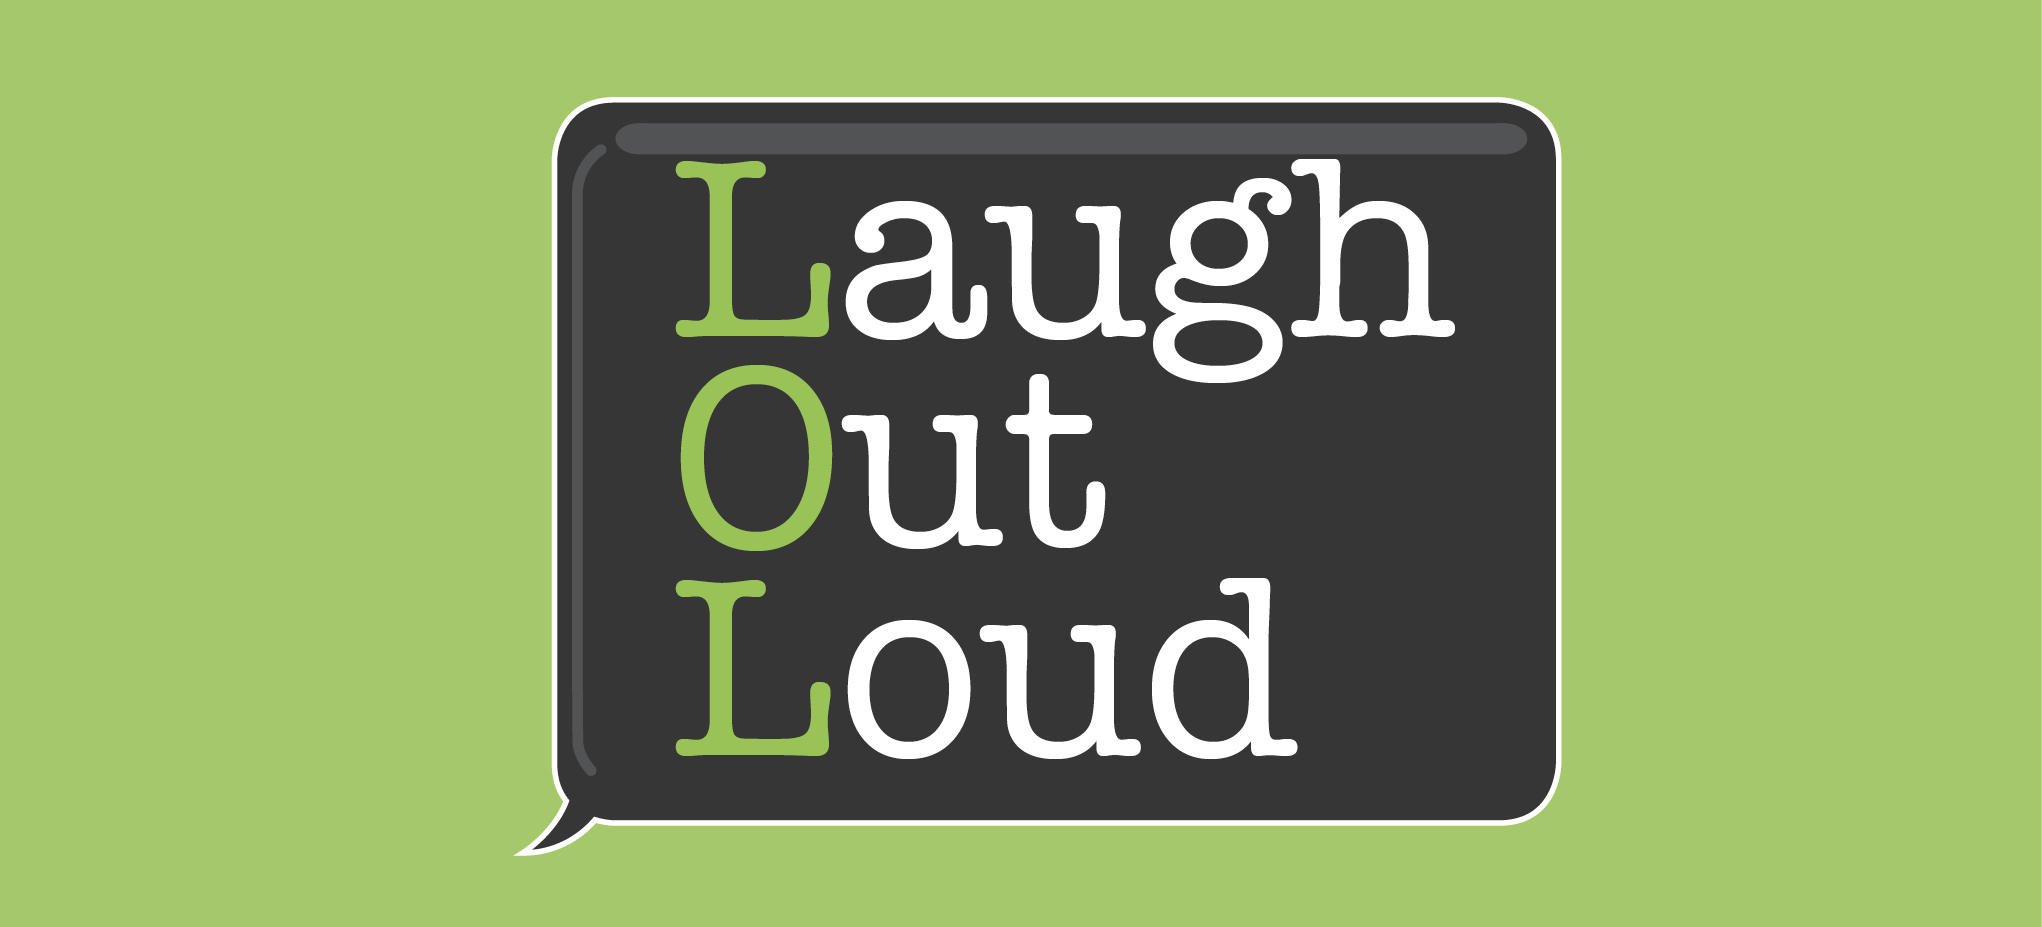 learn how to laugh out loud